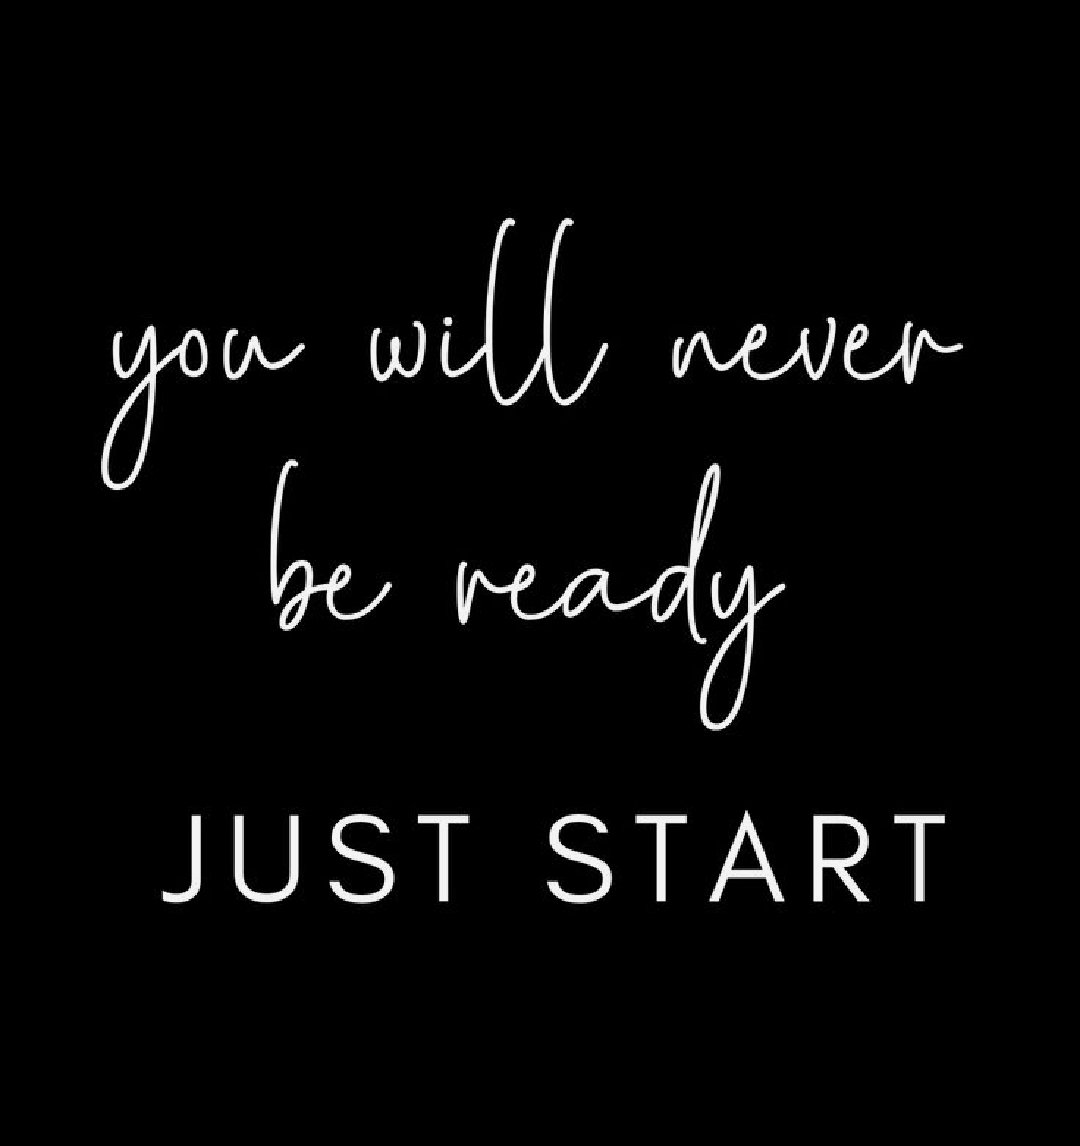 You will never be ready JUST START ! #Motivation #success #quote #quotesdaily #ThoughtForTheDay https://t.co/pFwxLBZmnW